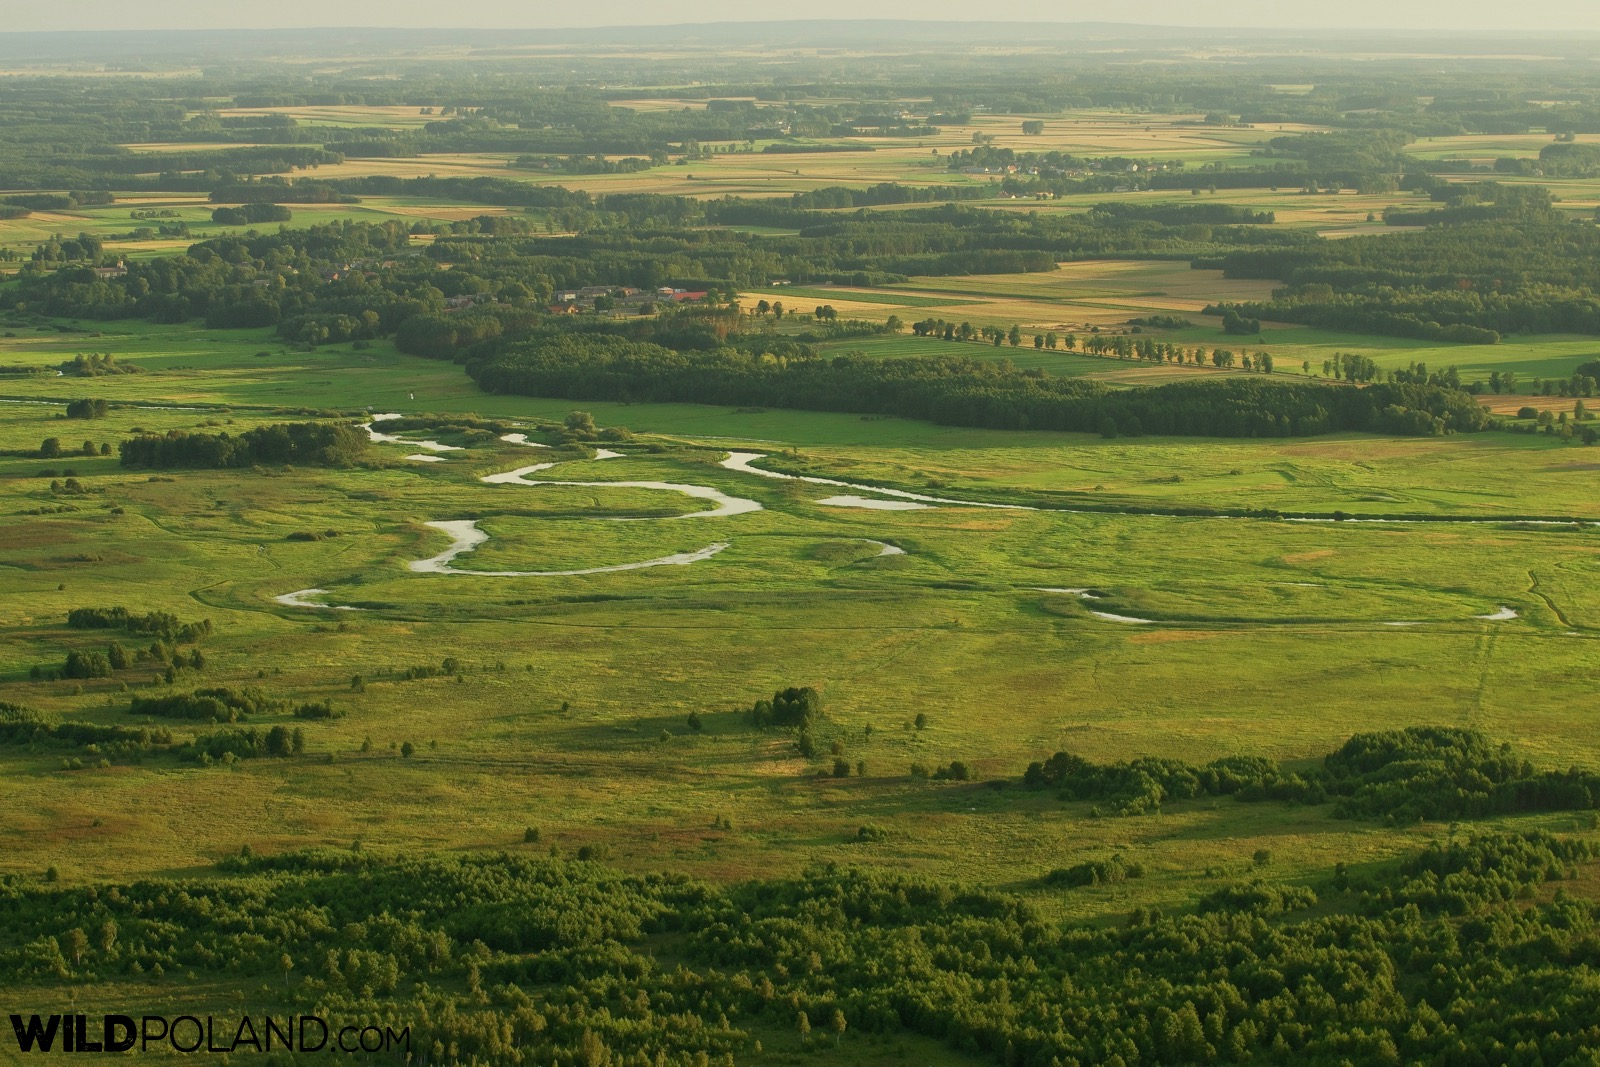 Balloon adventure with Wild Poland, flight over Biebrza Marshes, photo by Andrzej Petryna